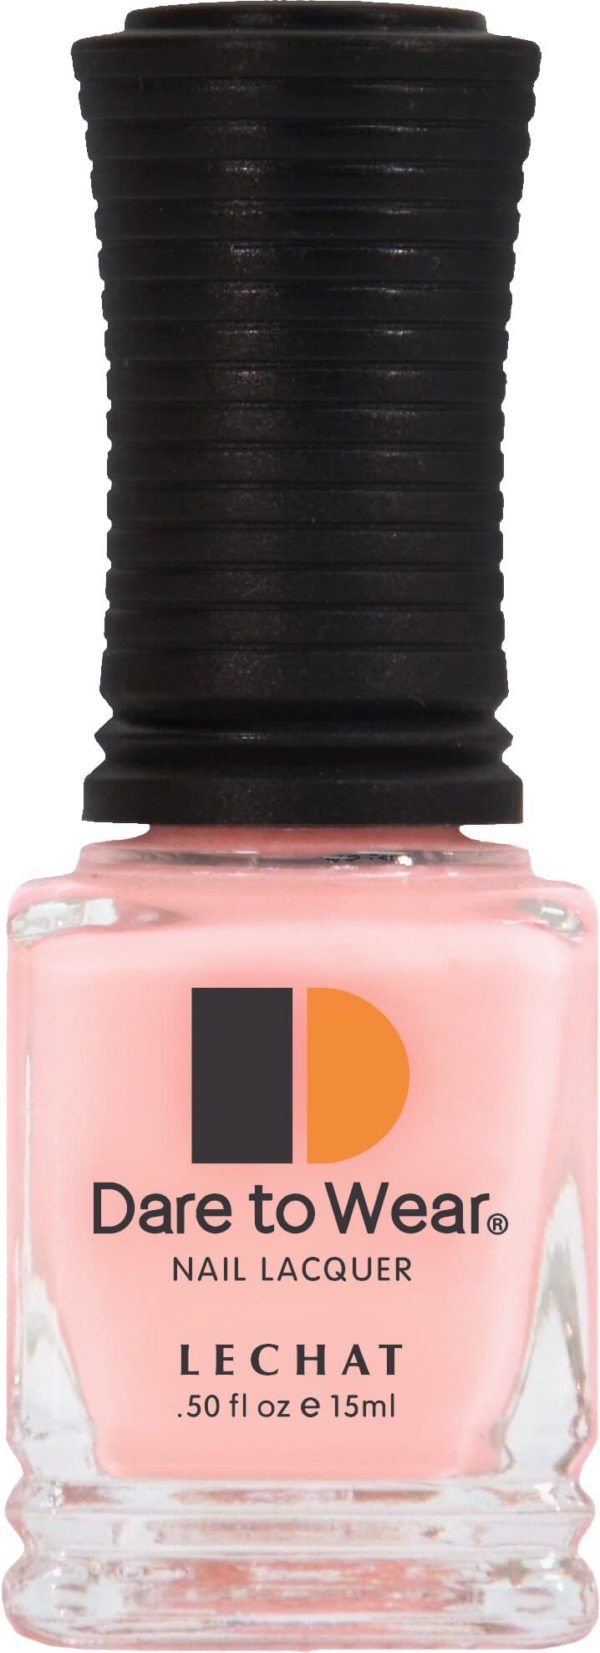 half fluid ounce bottle of pink Dare to Wear lacquer.